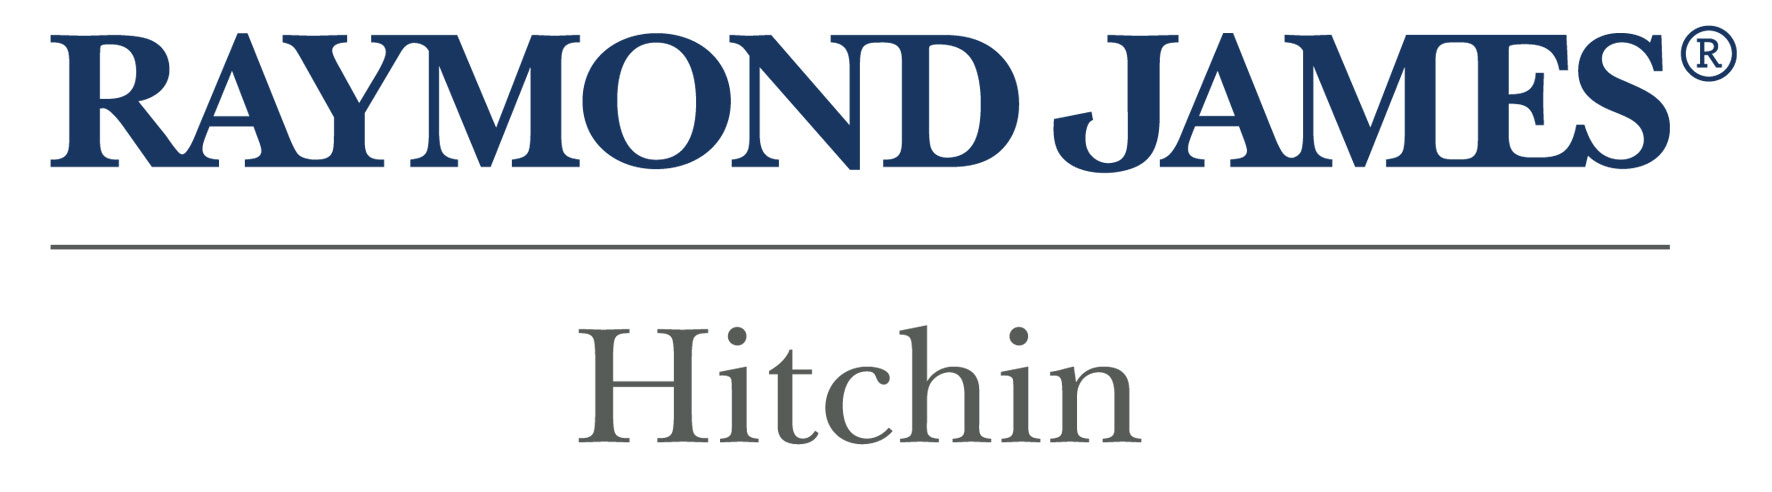 Raymond James | Pensions ISAs Savings Investments | Hitchin